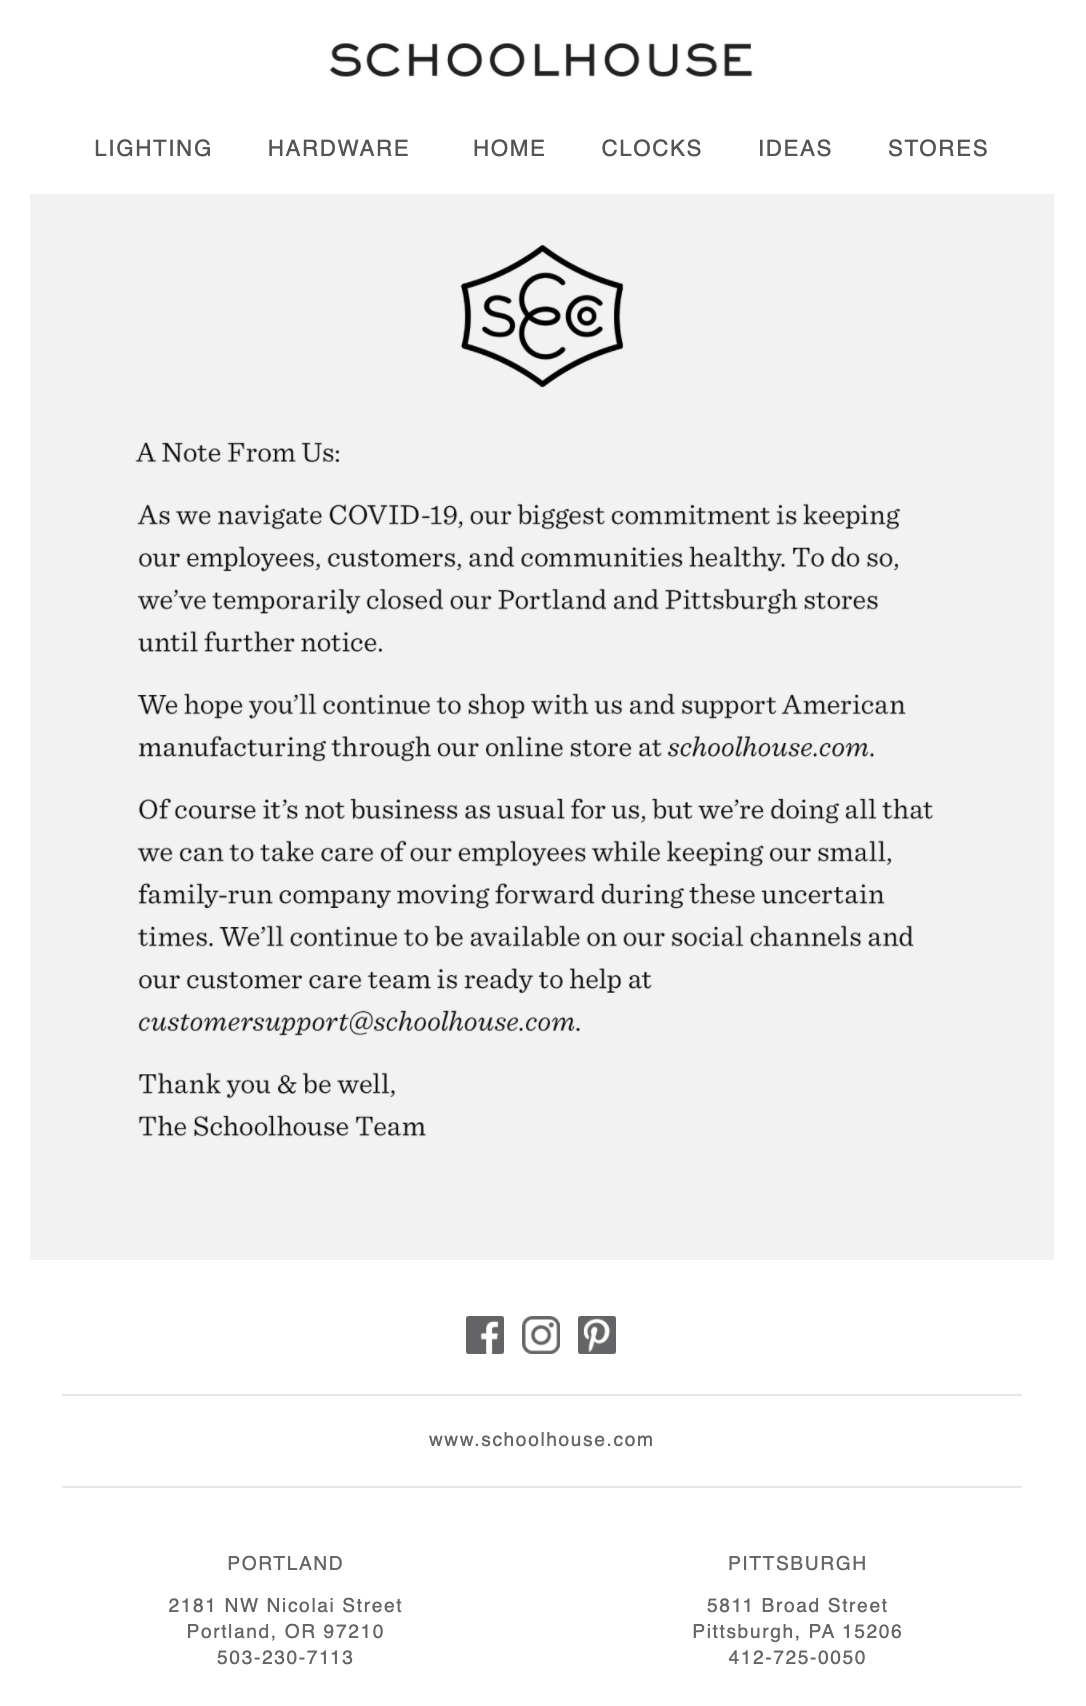 email from schoolhouse talking about store closures and ways to buy online